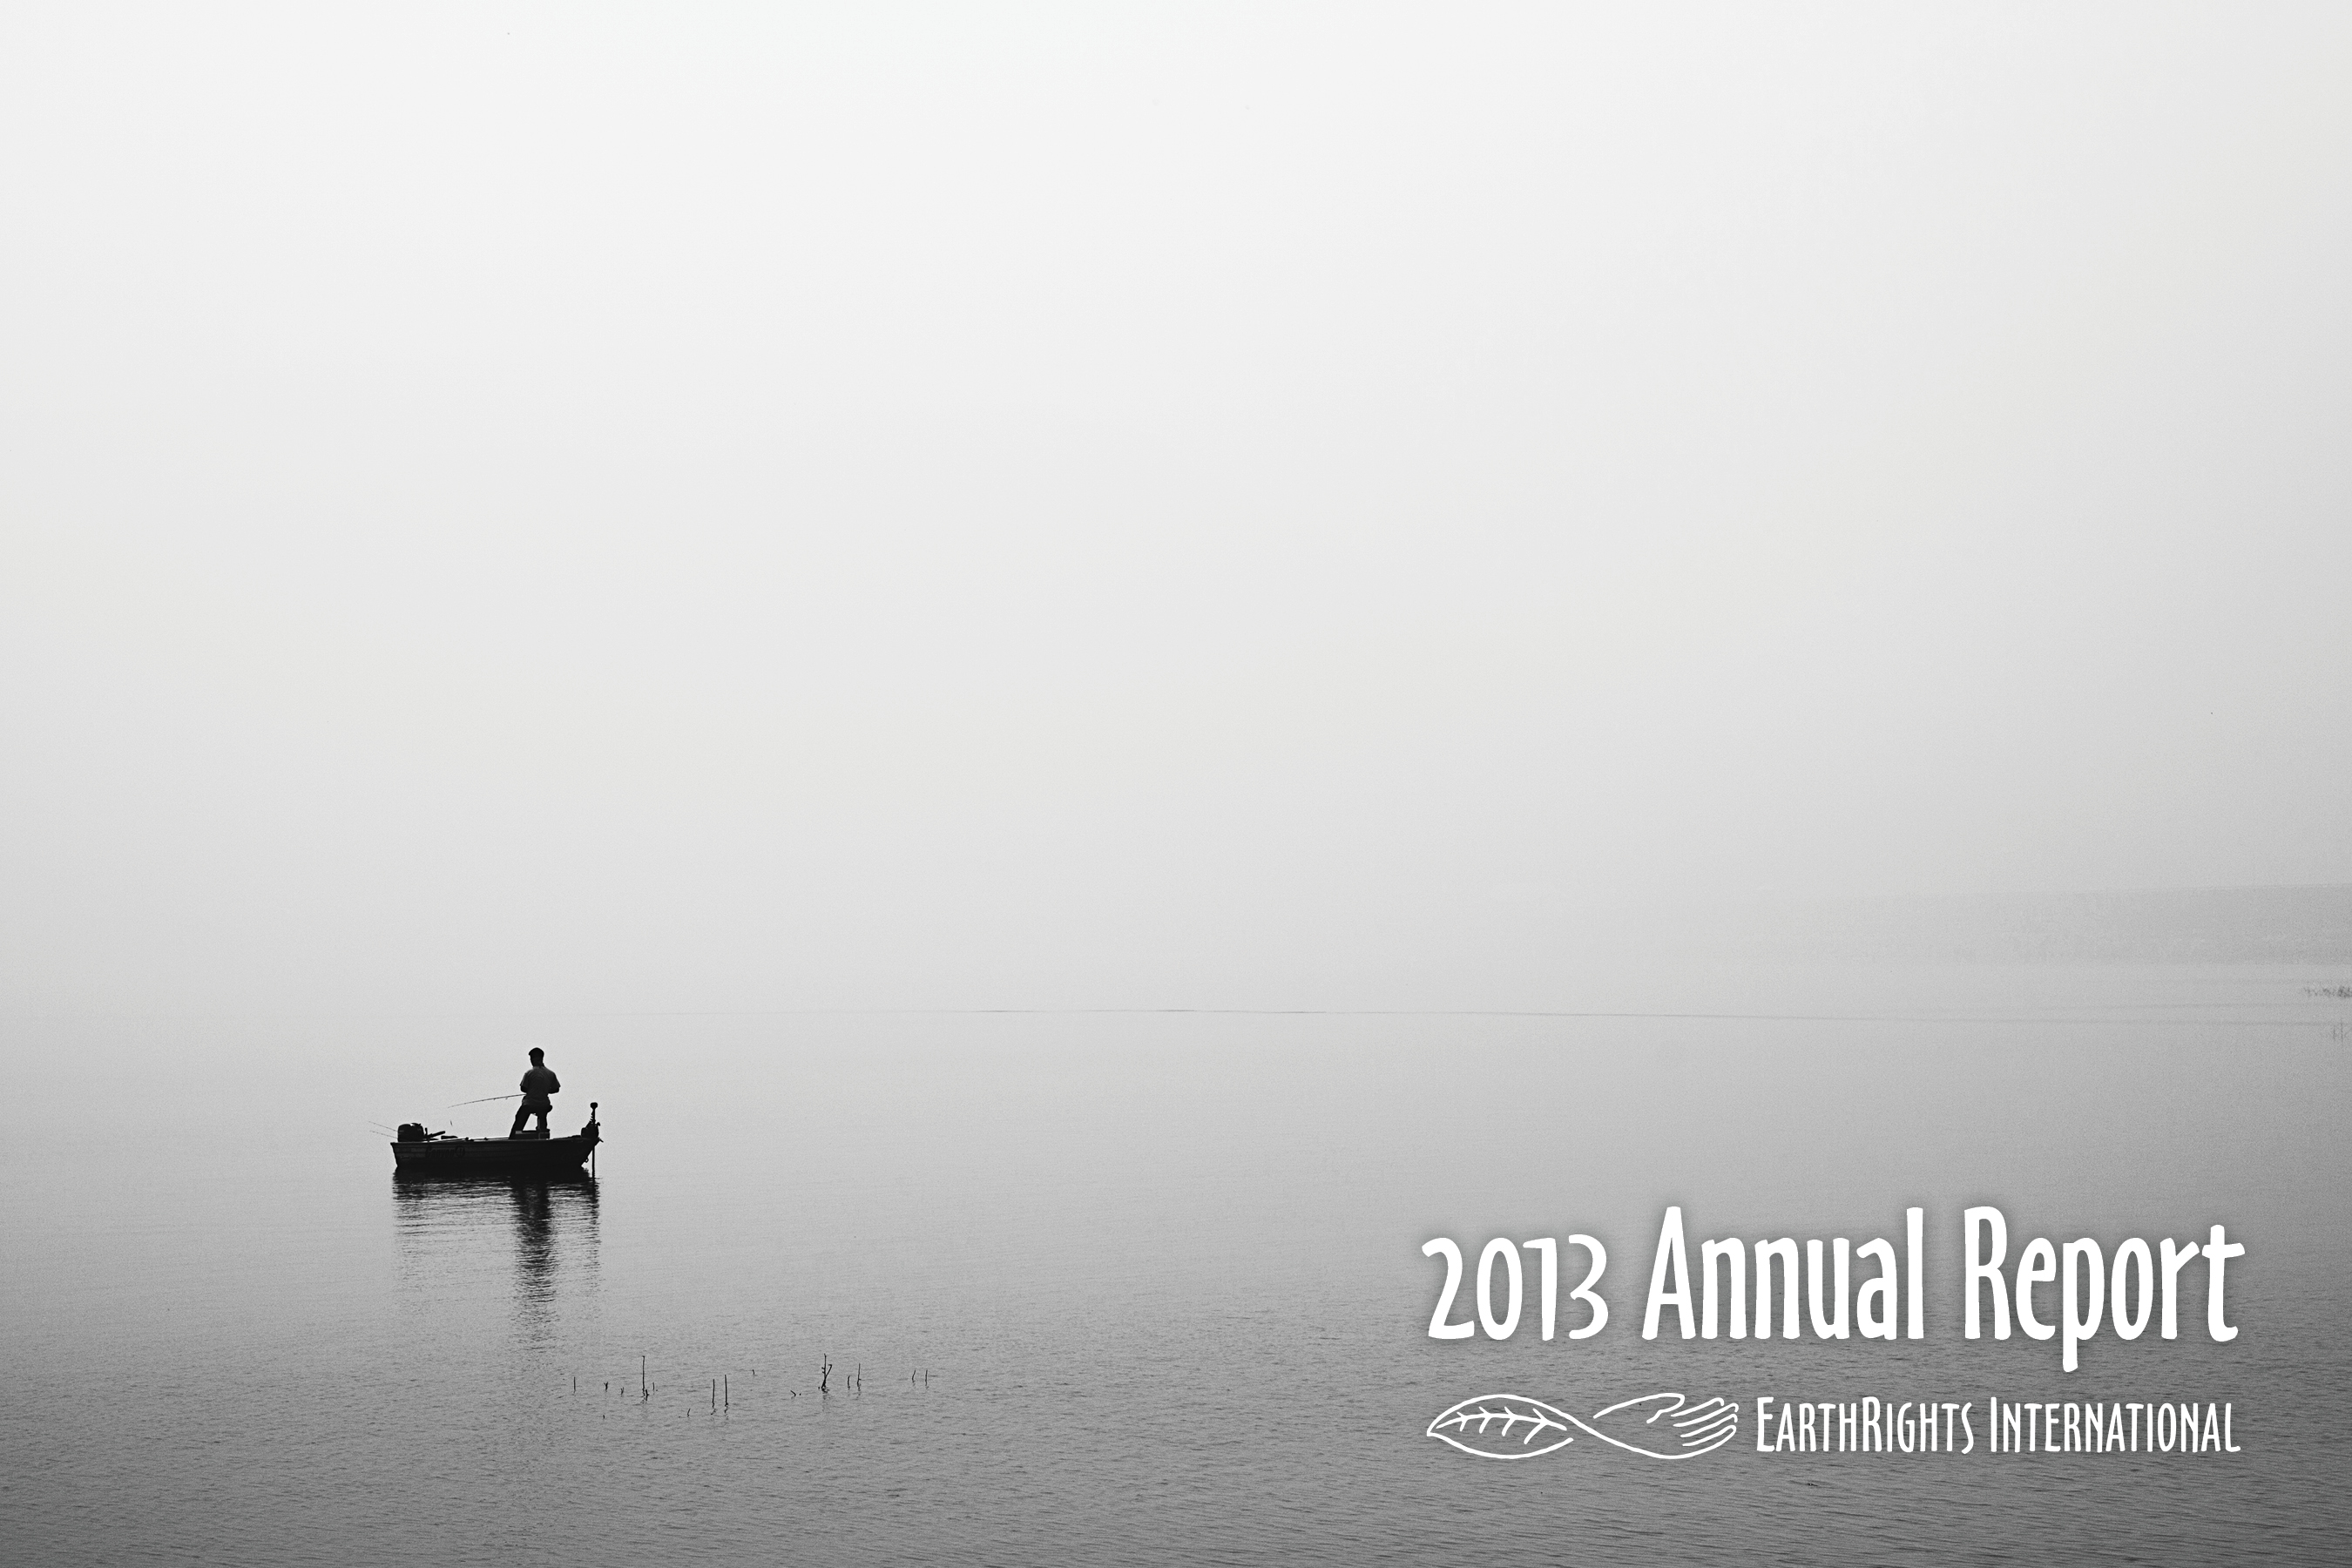 2013-annual-report-cover.jpg